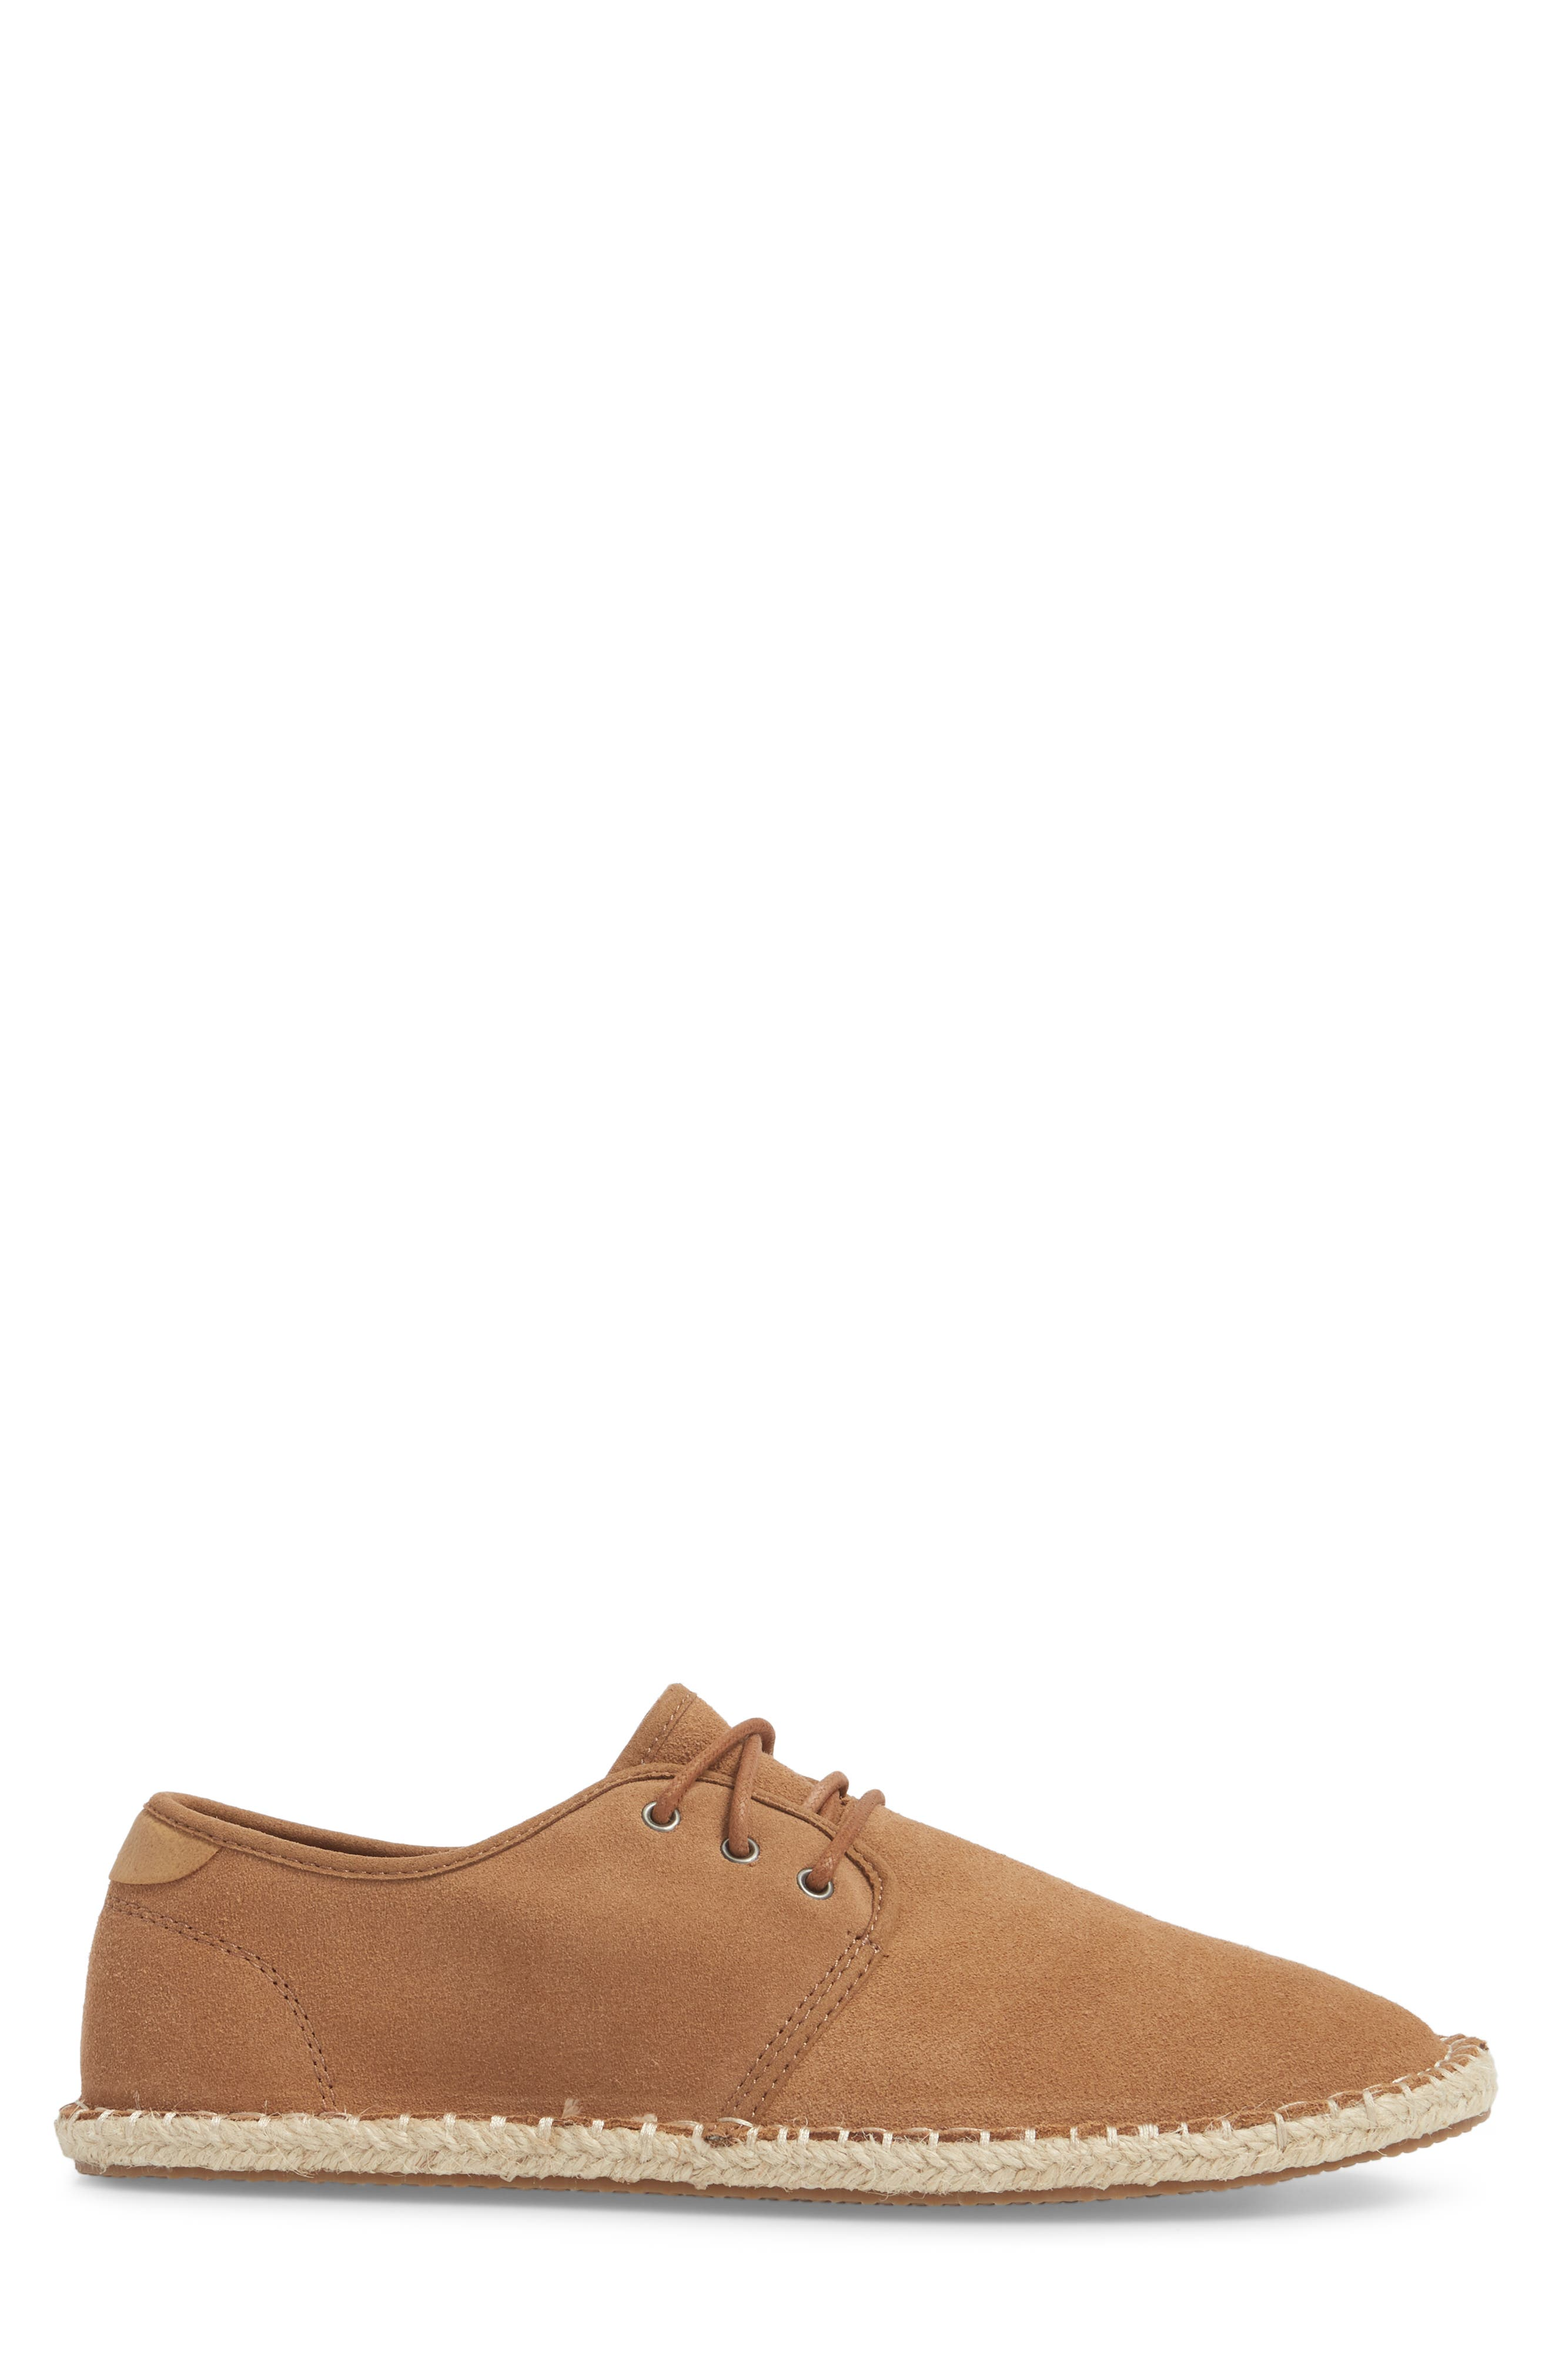 Diego Deconstructed Derby,                             Alternate thumbnail 3, color,                             Toffee Suede